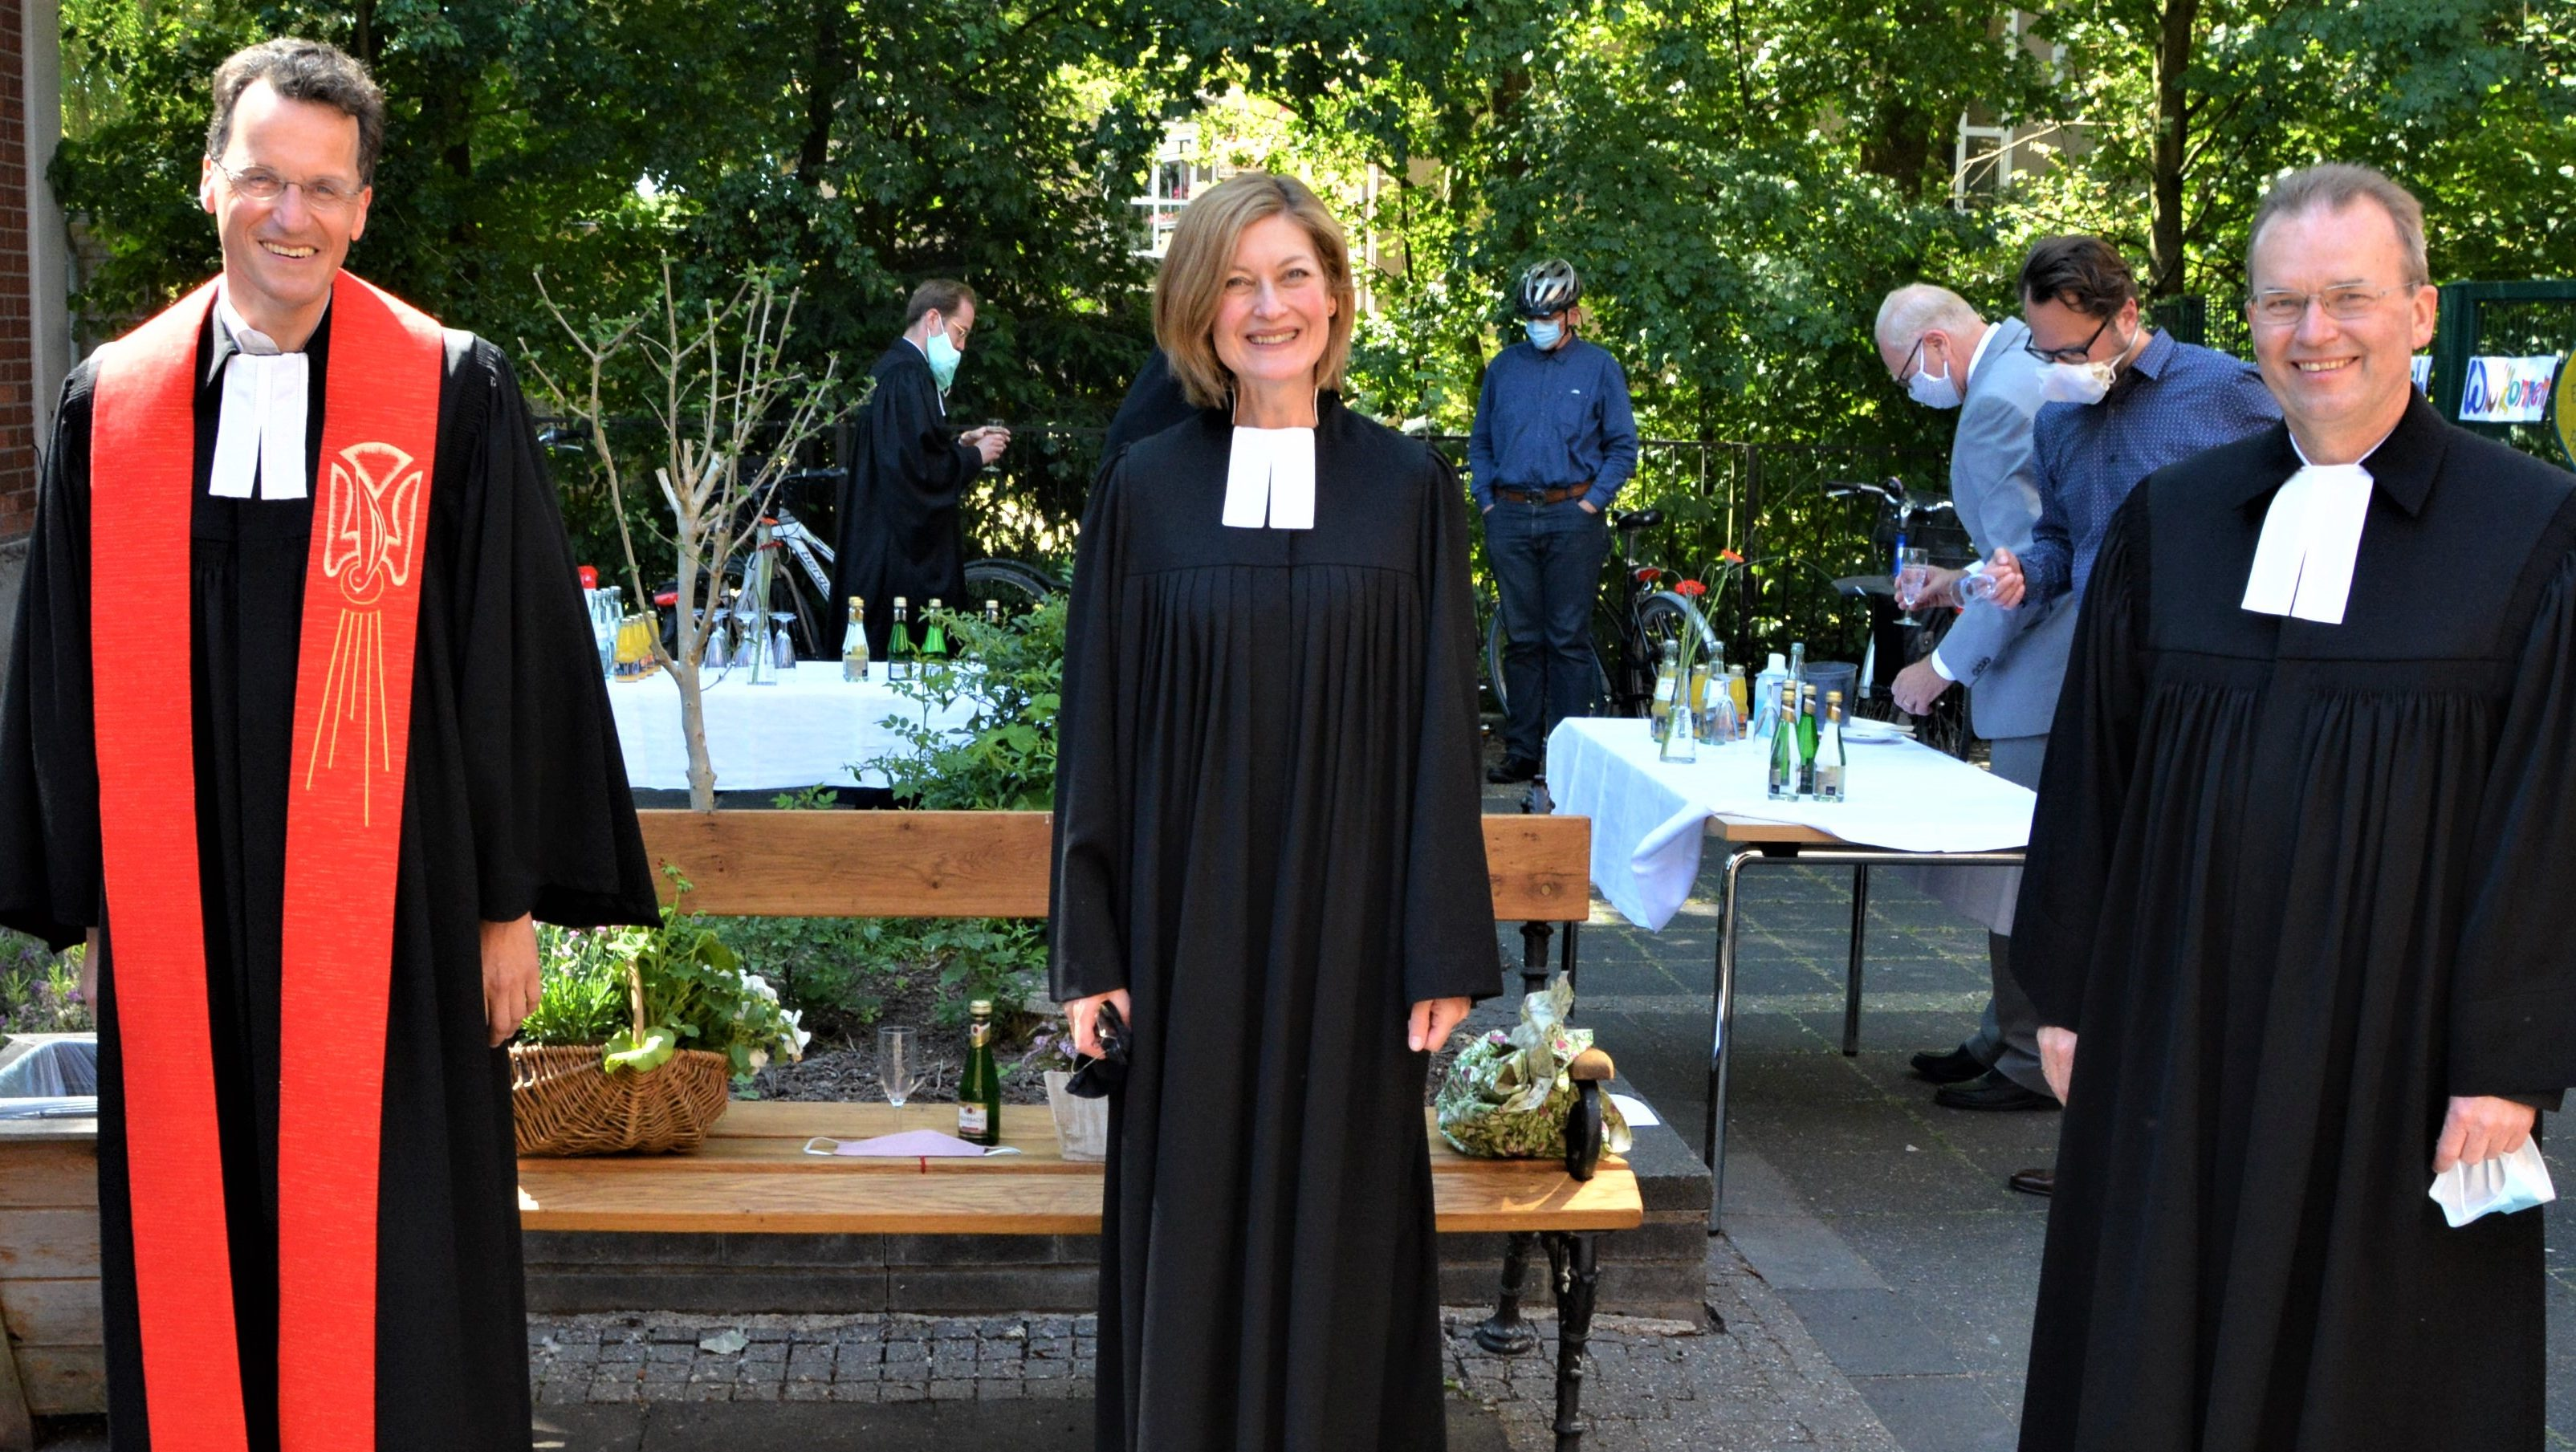 Premiere in der Philippuskirche – Ordination von Nicola Thomas-Landgrebe in Corona-Zeiten